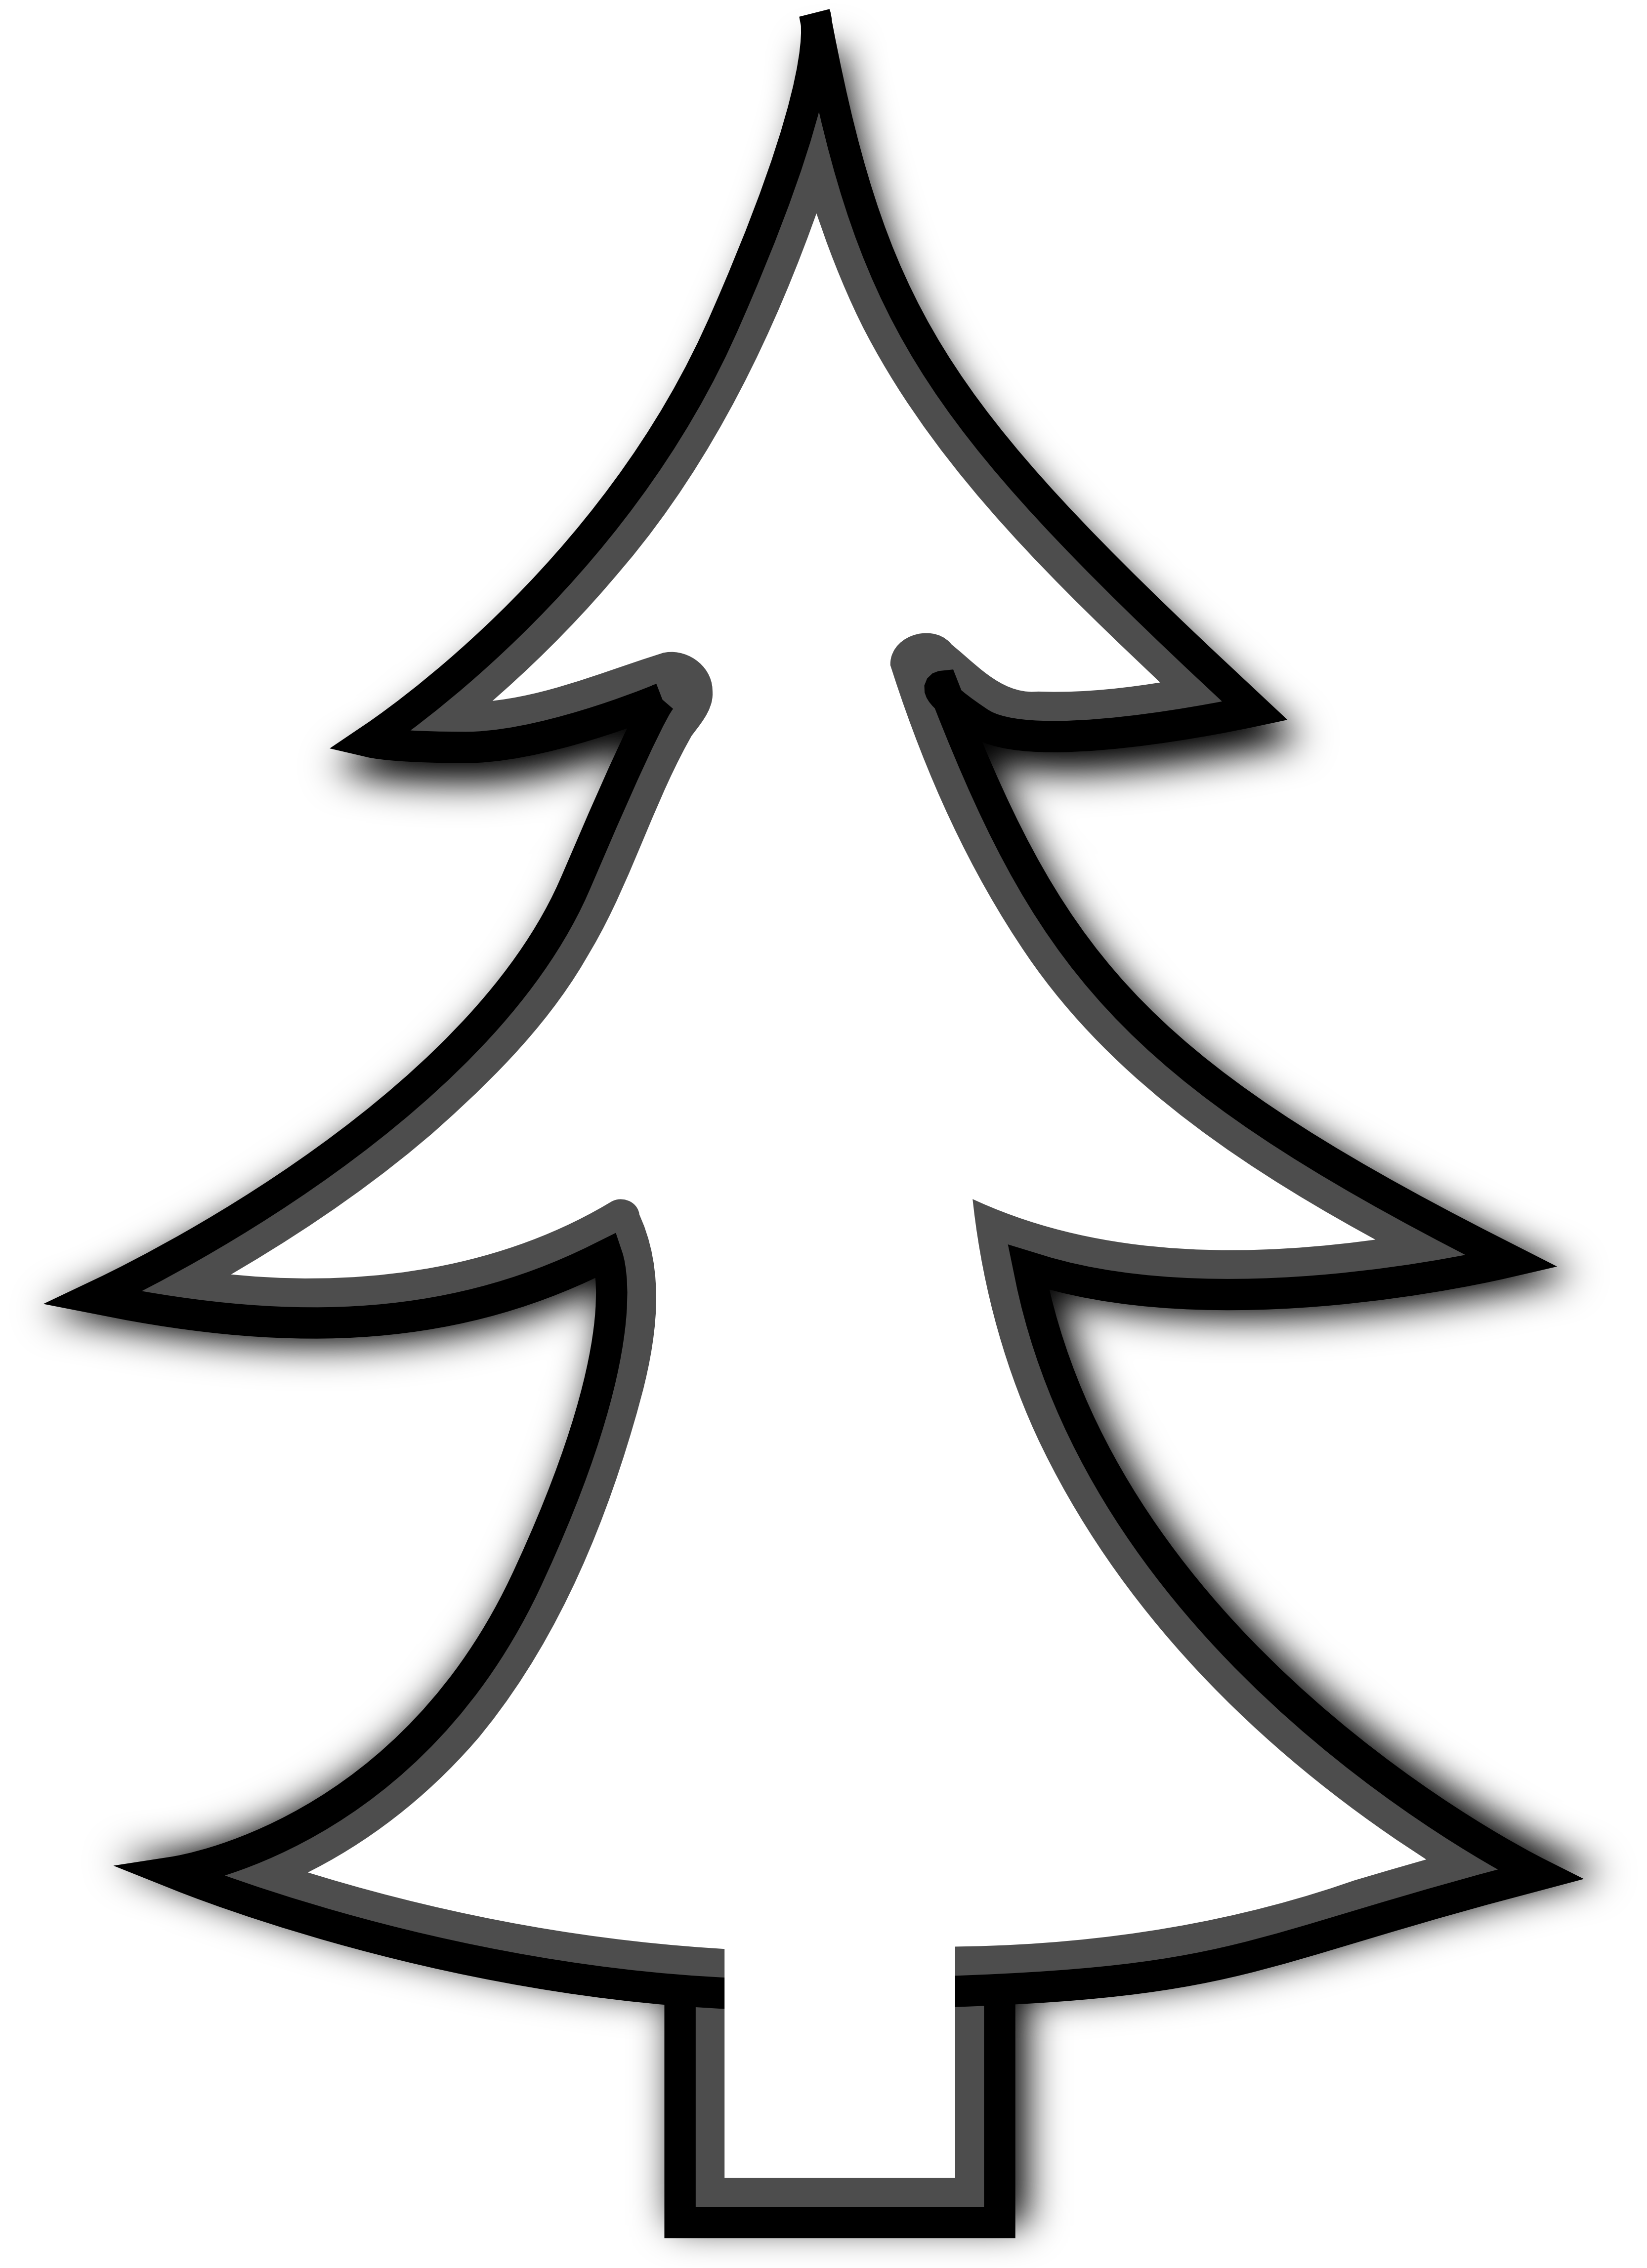 Pine tree silhouette at. Sharpener clipart black and white png free library